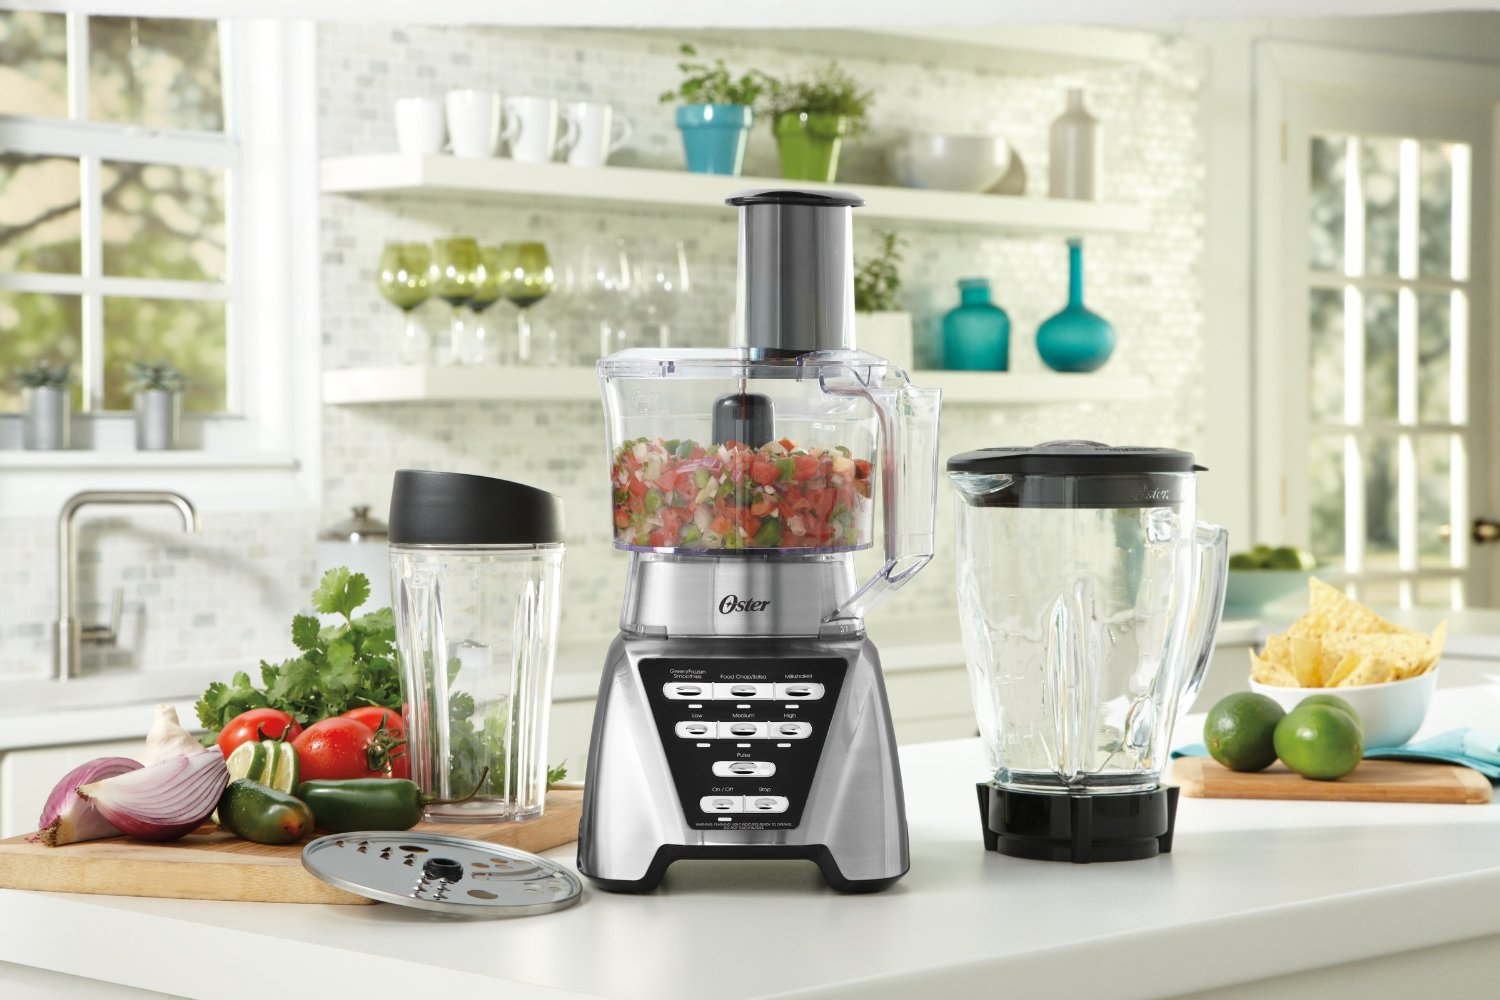 Oster Professional Food Mixers & Blenders